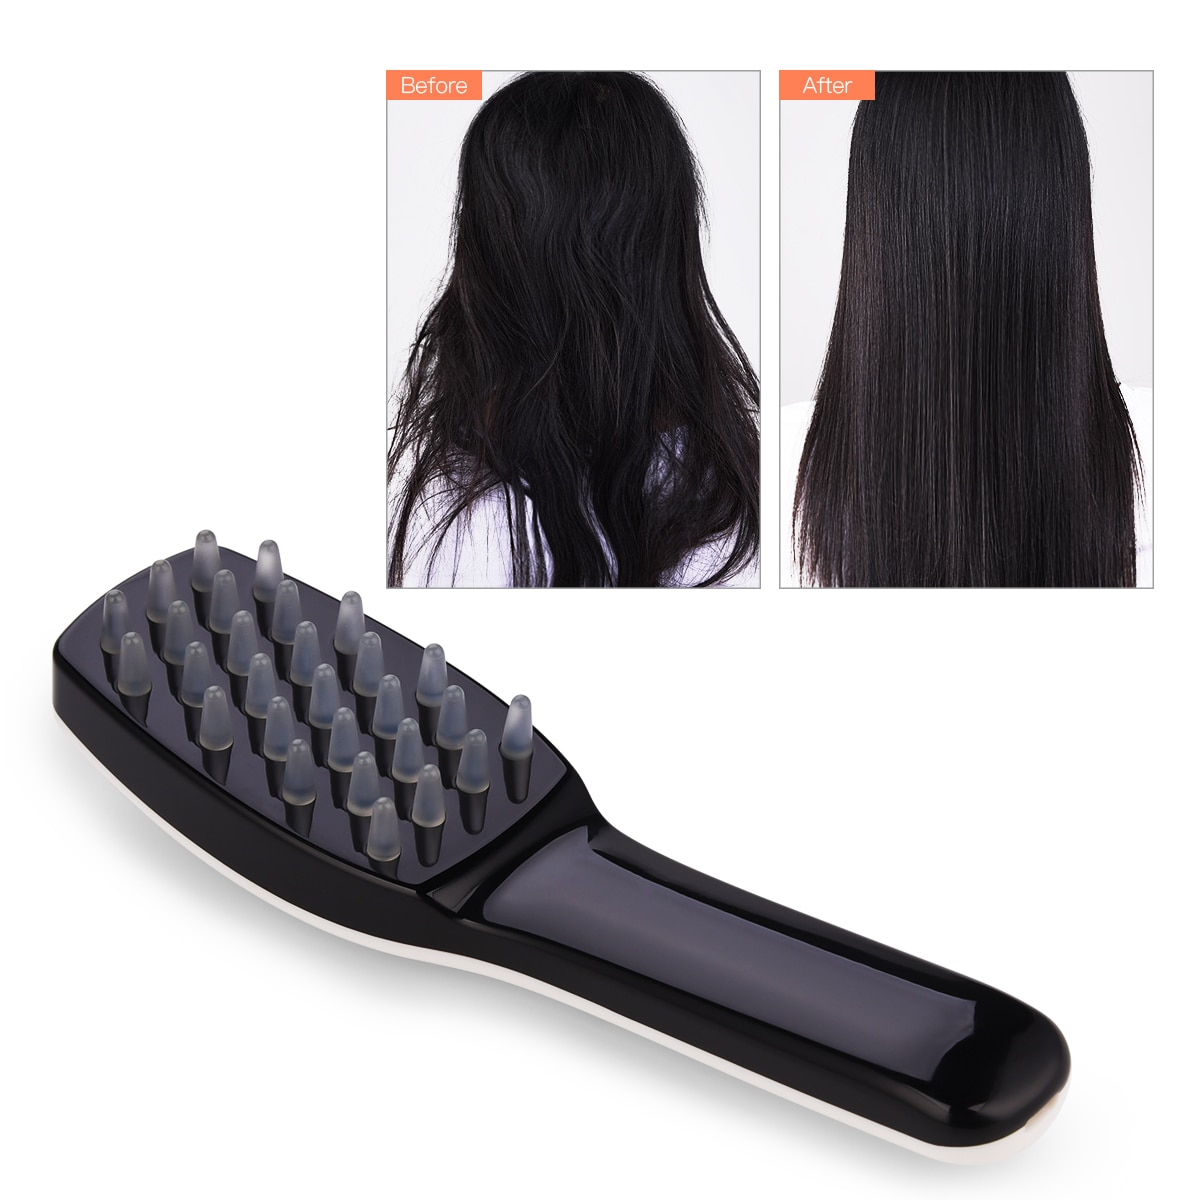 CkeyiN Phototherapy Vibration Massage Comb Scalp Brush Stress Relief Neck Back Anti Hair Loss Blood Circulation with LED Light